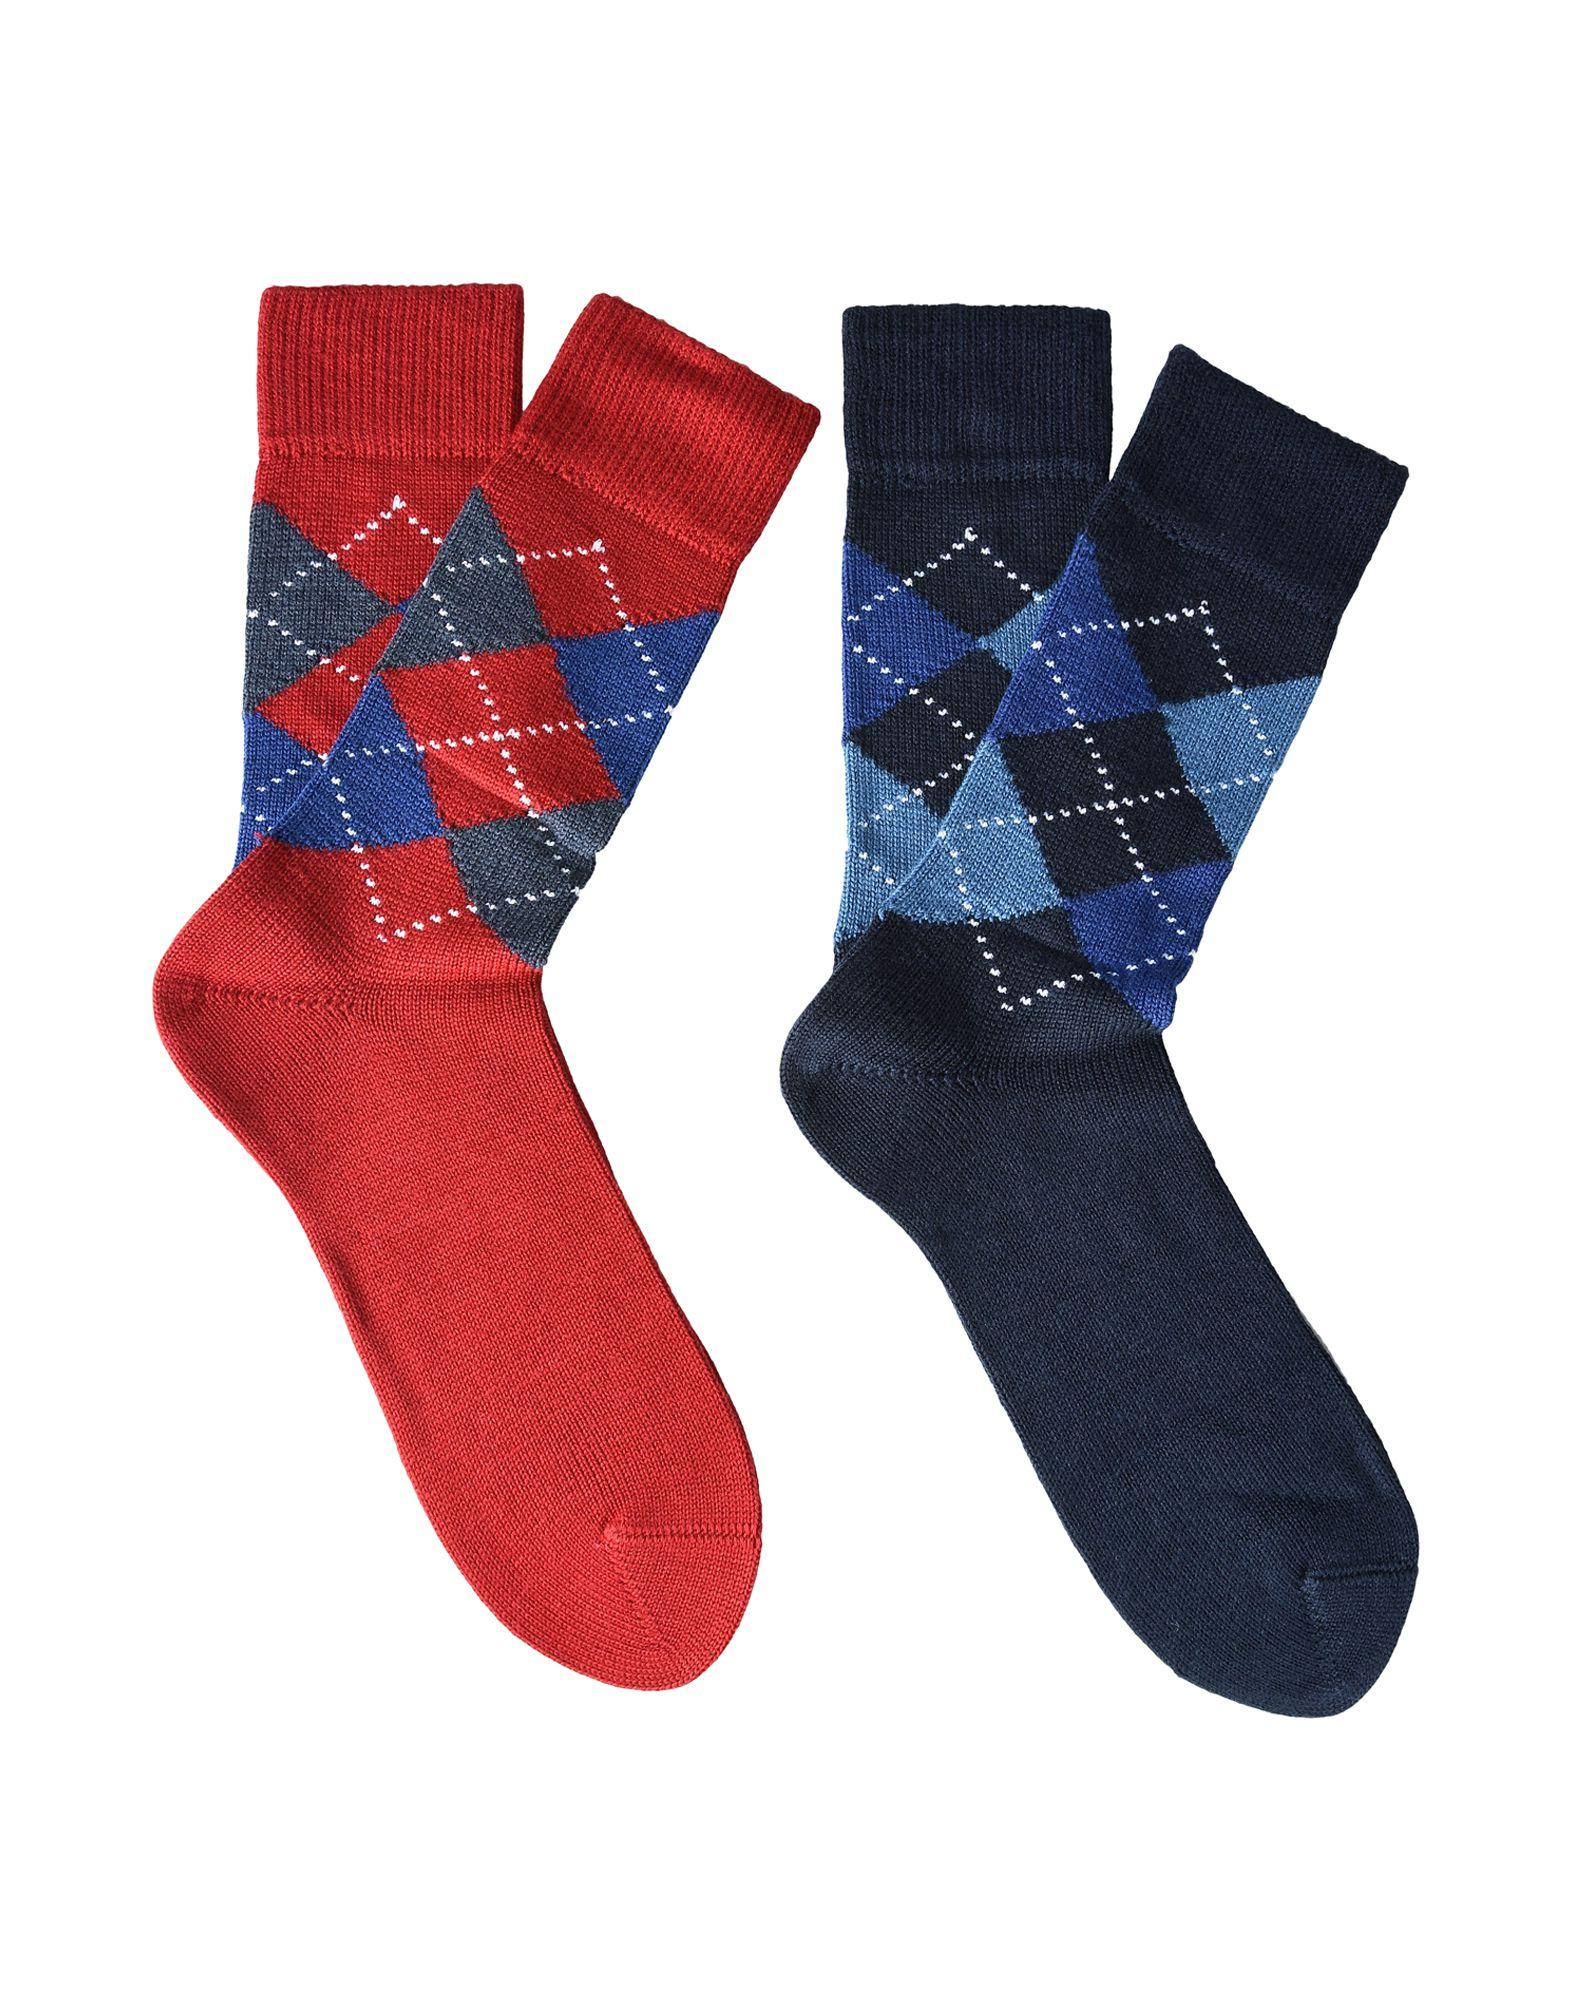 Shop for short socks for men online at Target. Free shipping on purchases over $35 and save 5% every day with your Target REDcard.